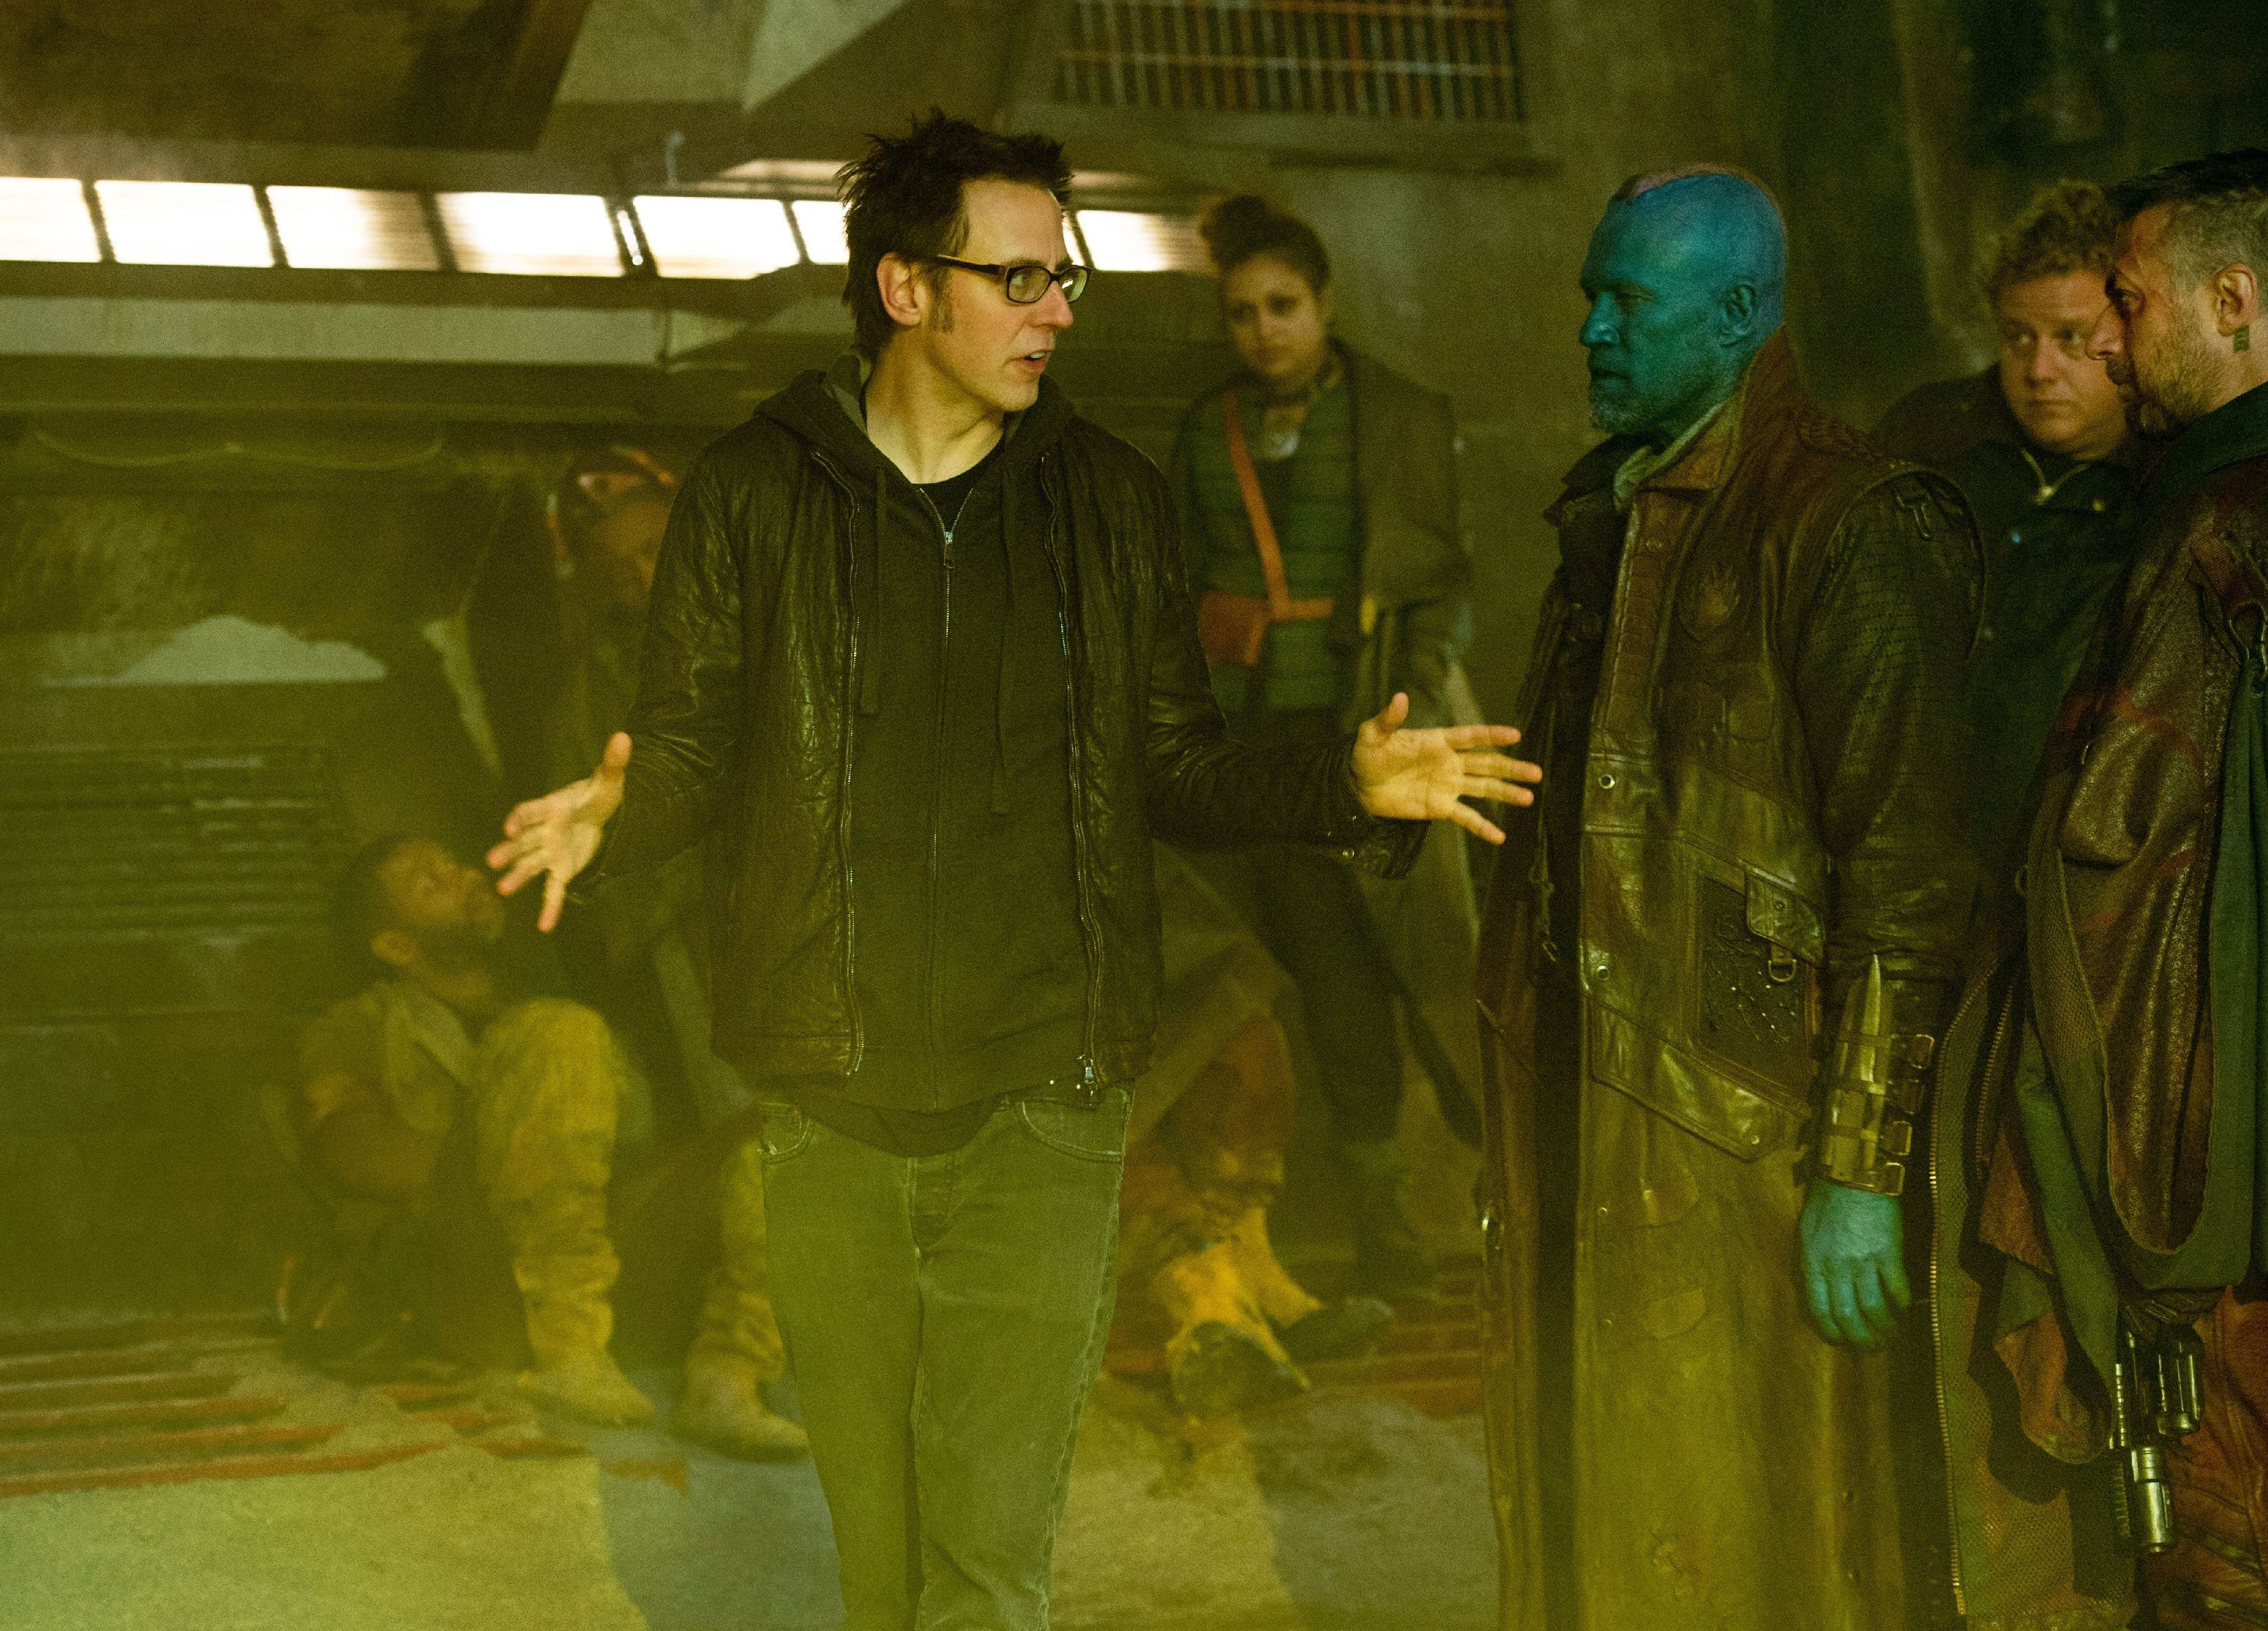 James Gunn on the set directing Guardians of the Galaxy